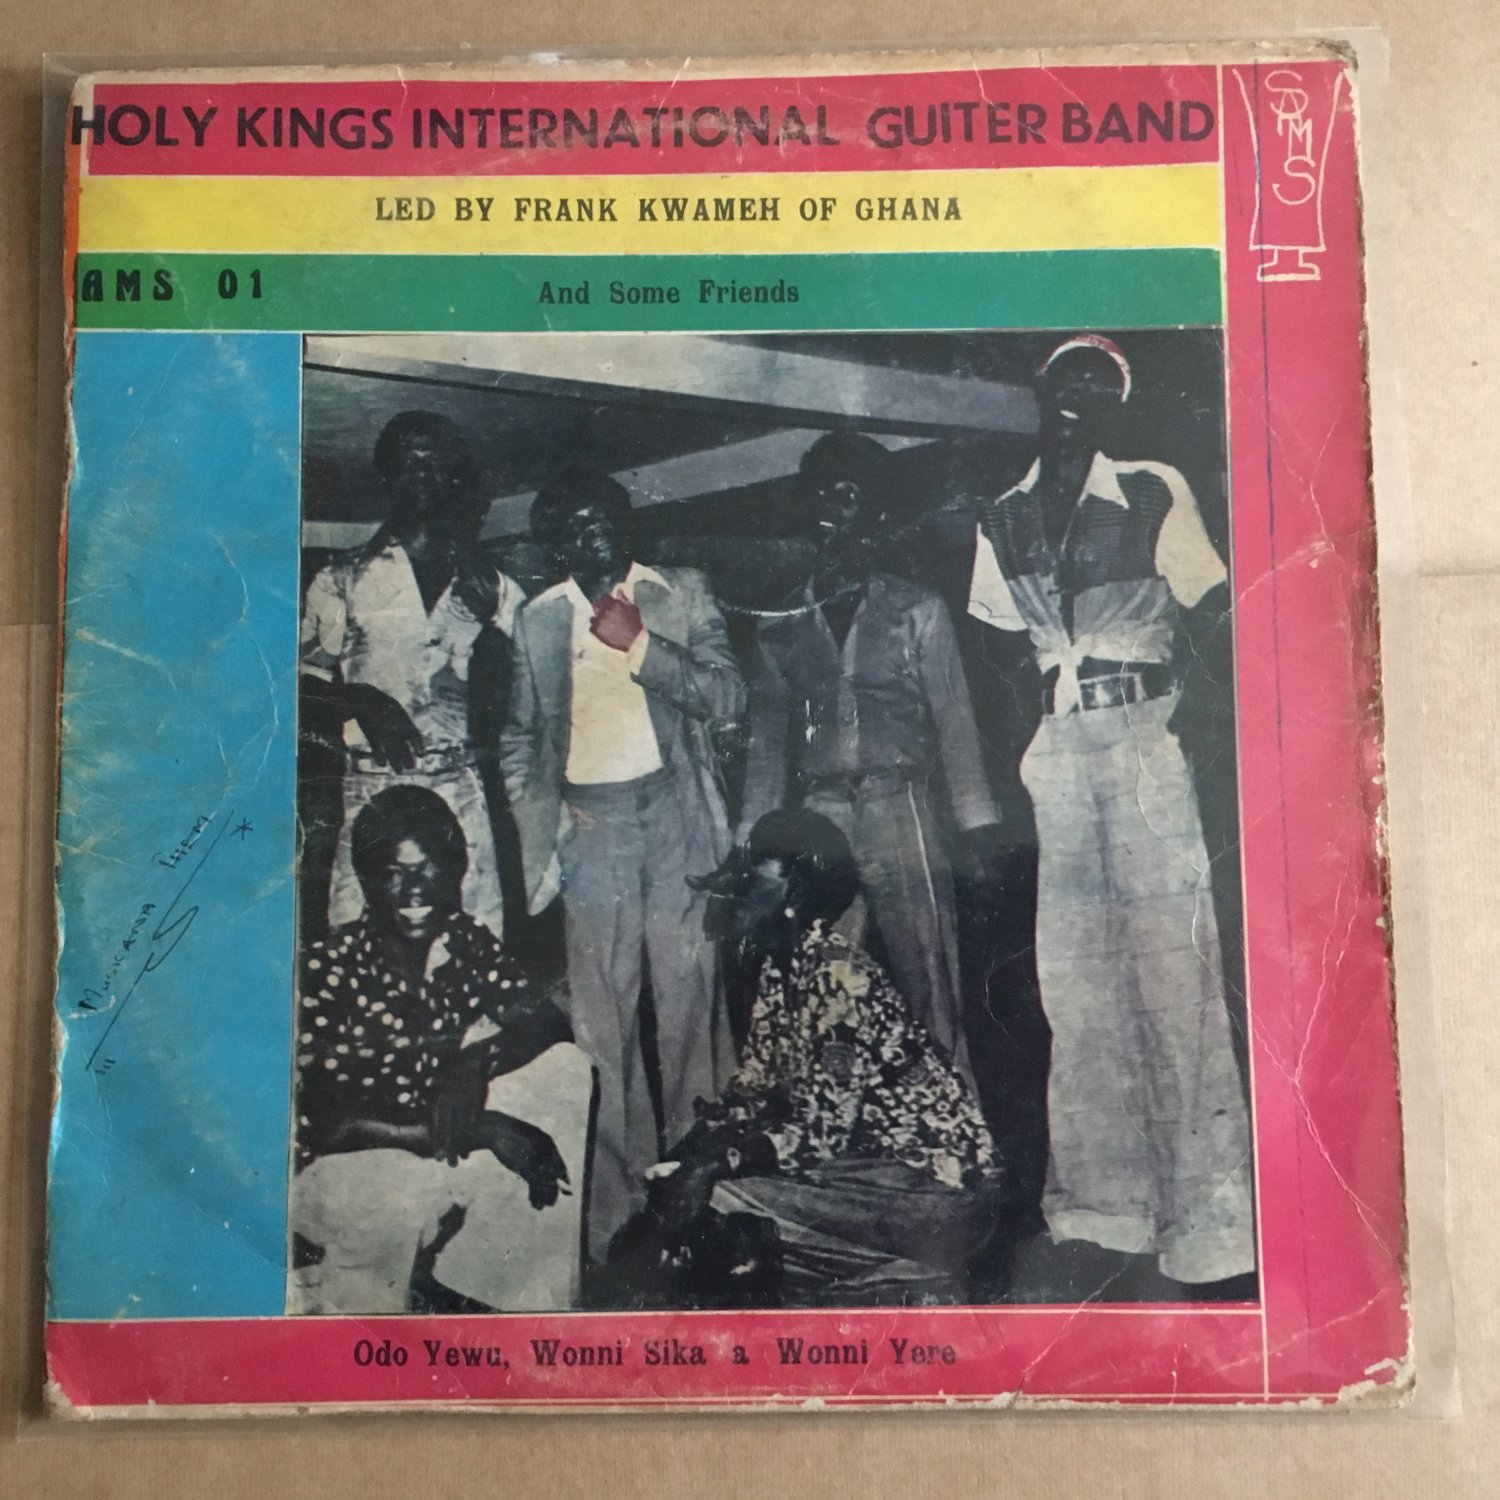 HOLY KINGS INT. GUITER BAND led FRANK KWAMEH LP GHANA HIGHLIFE mp3 LISTEN